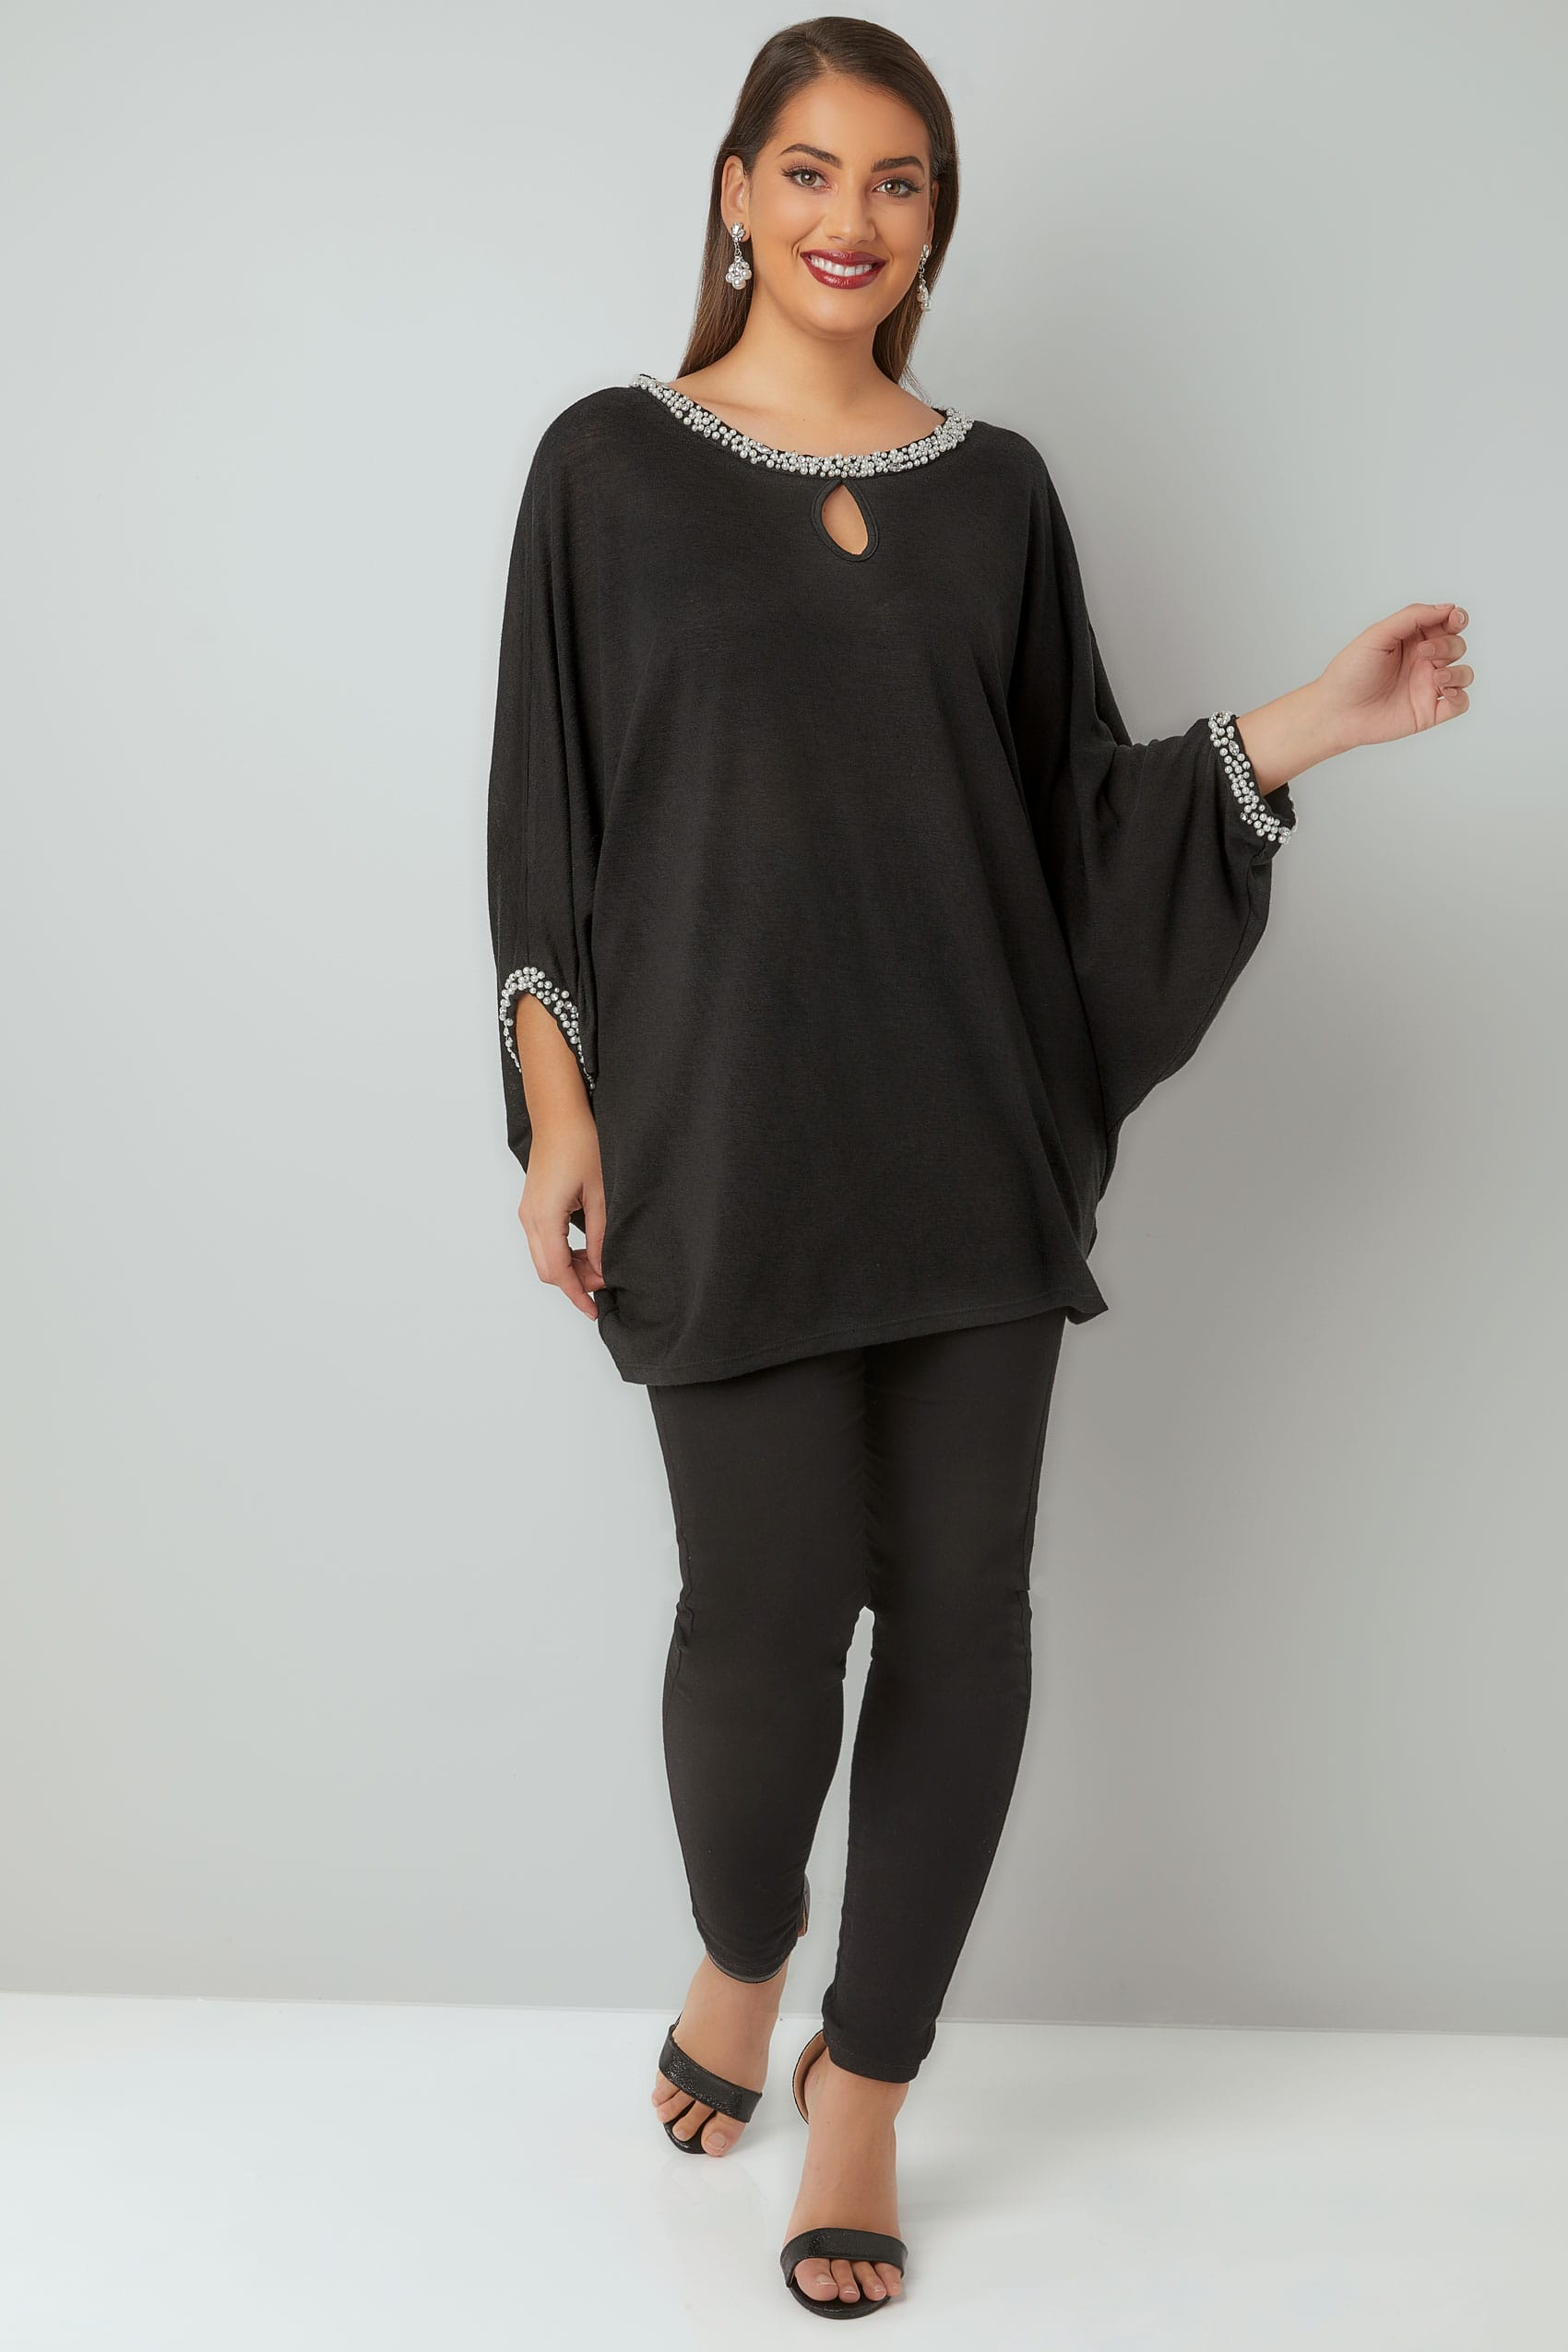 Knitting Lessons London : Black fine knit cape top with faux pearl diamante trim